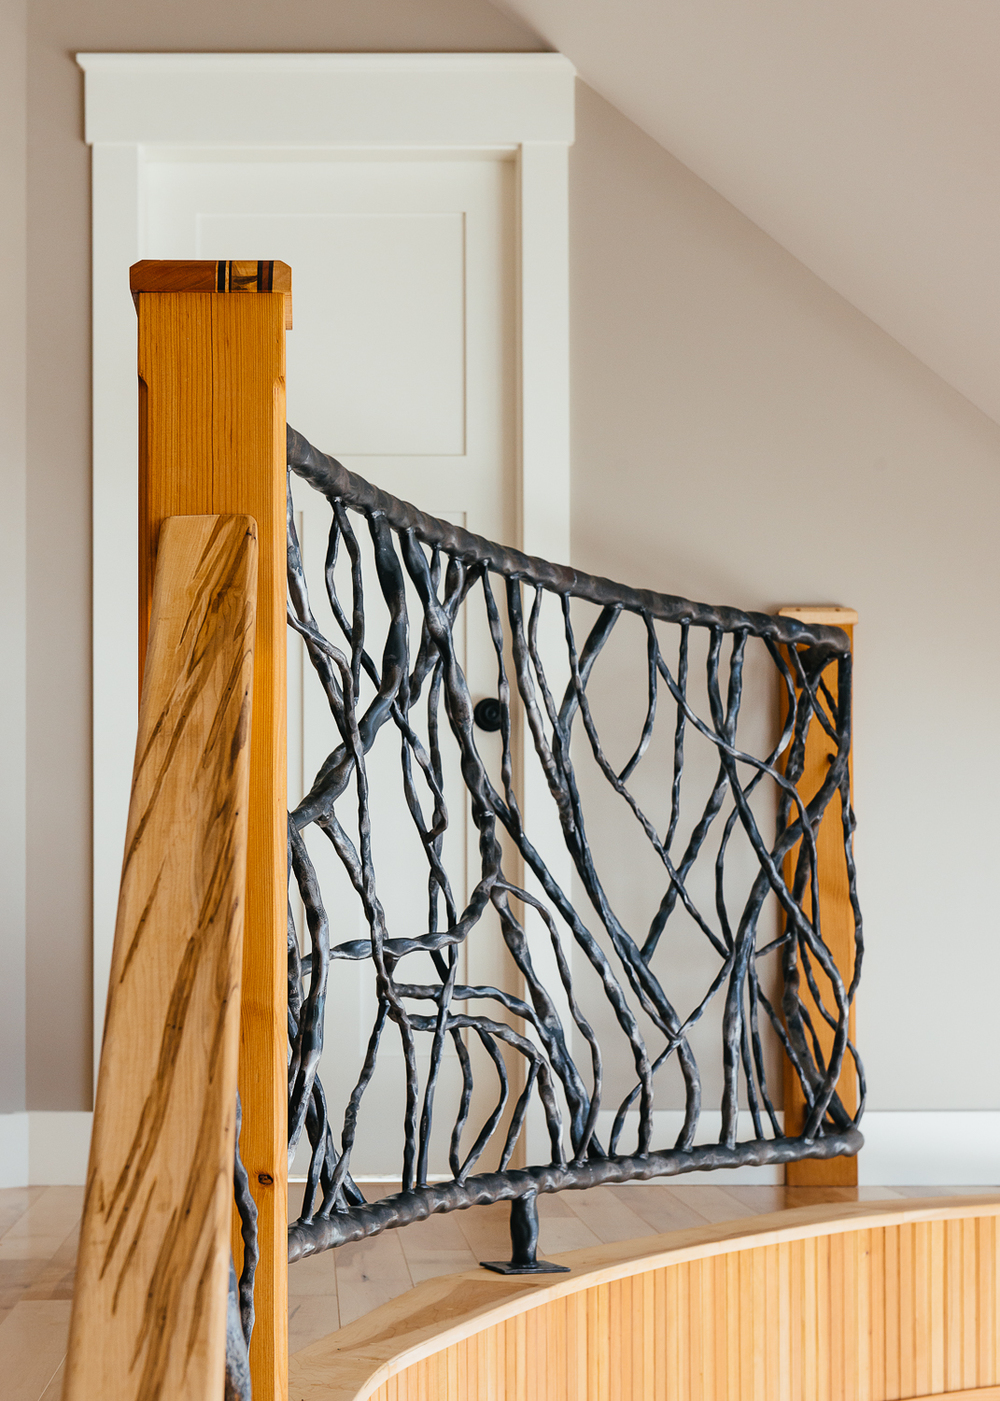 Metal railings shaped like tree branches help bring the feeling of being outside in.